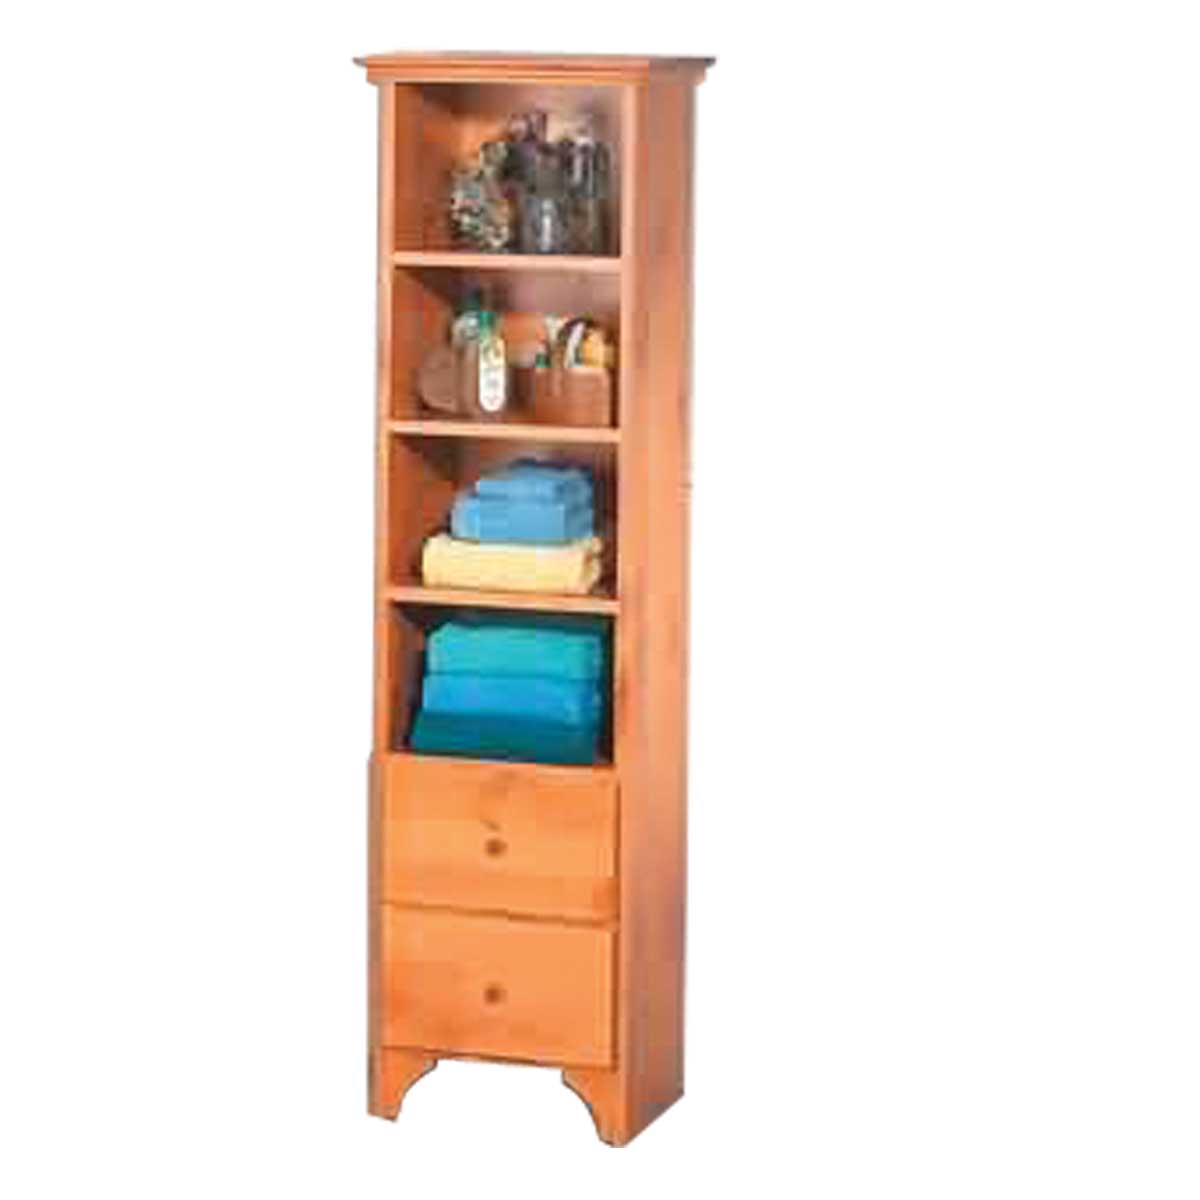 Bath tower shelf organizer bathroom heirloom pine for Bathroom organizers